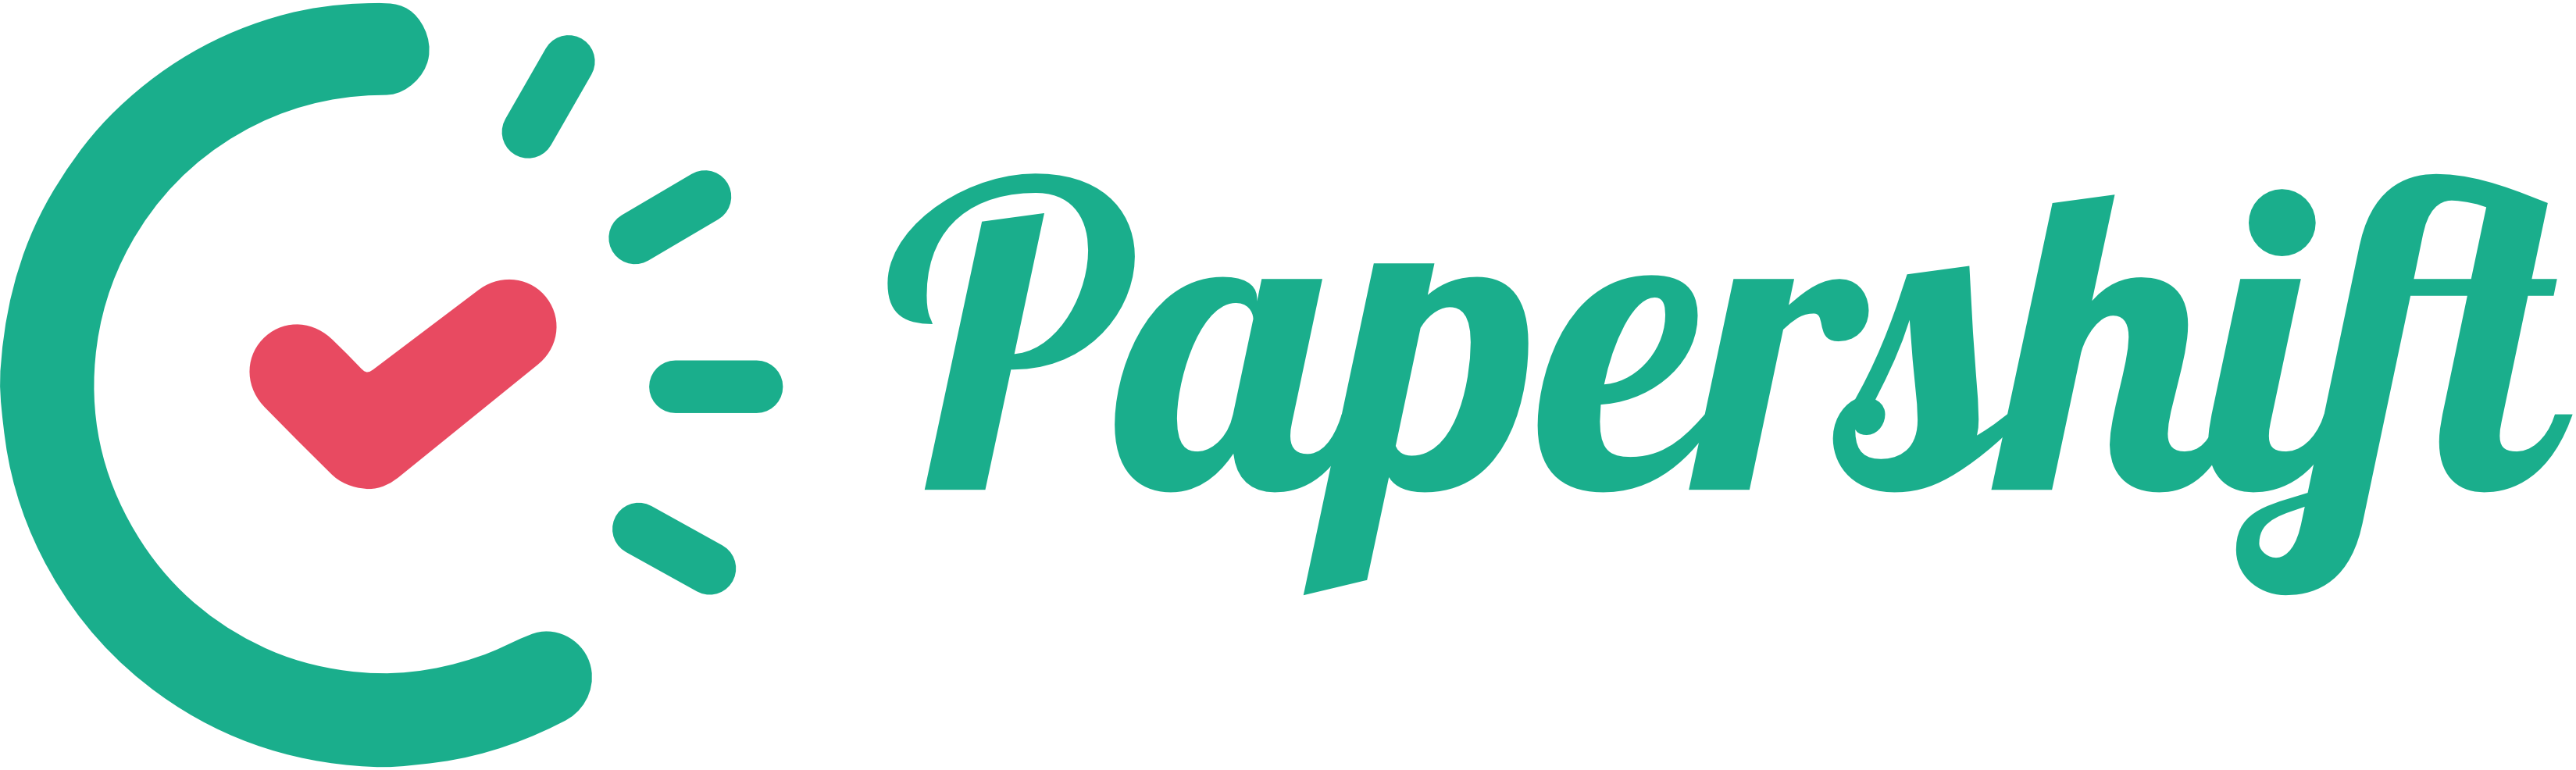 Papershift Logo Farbig